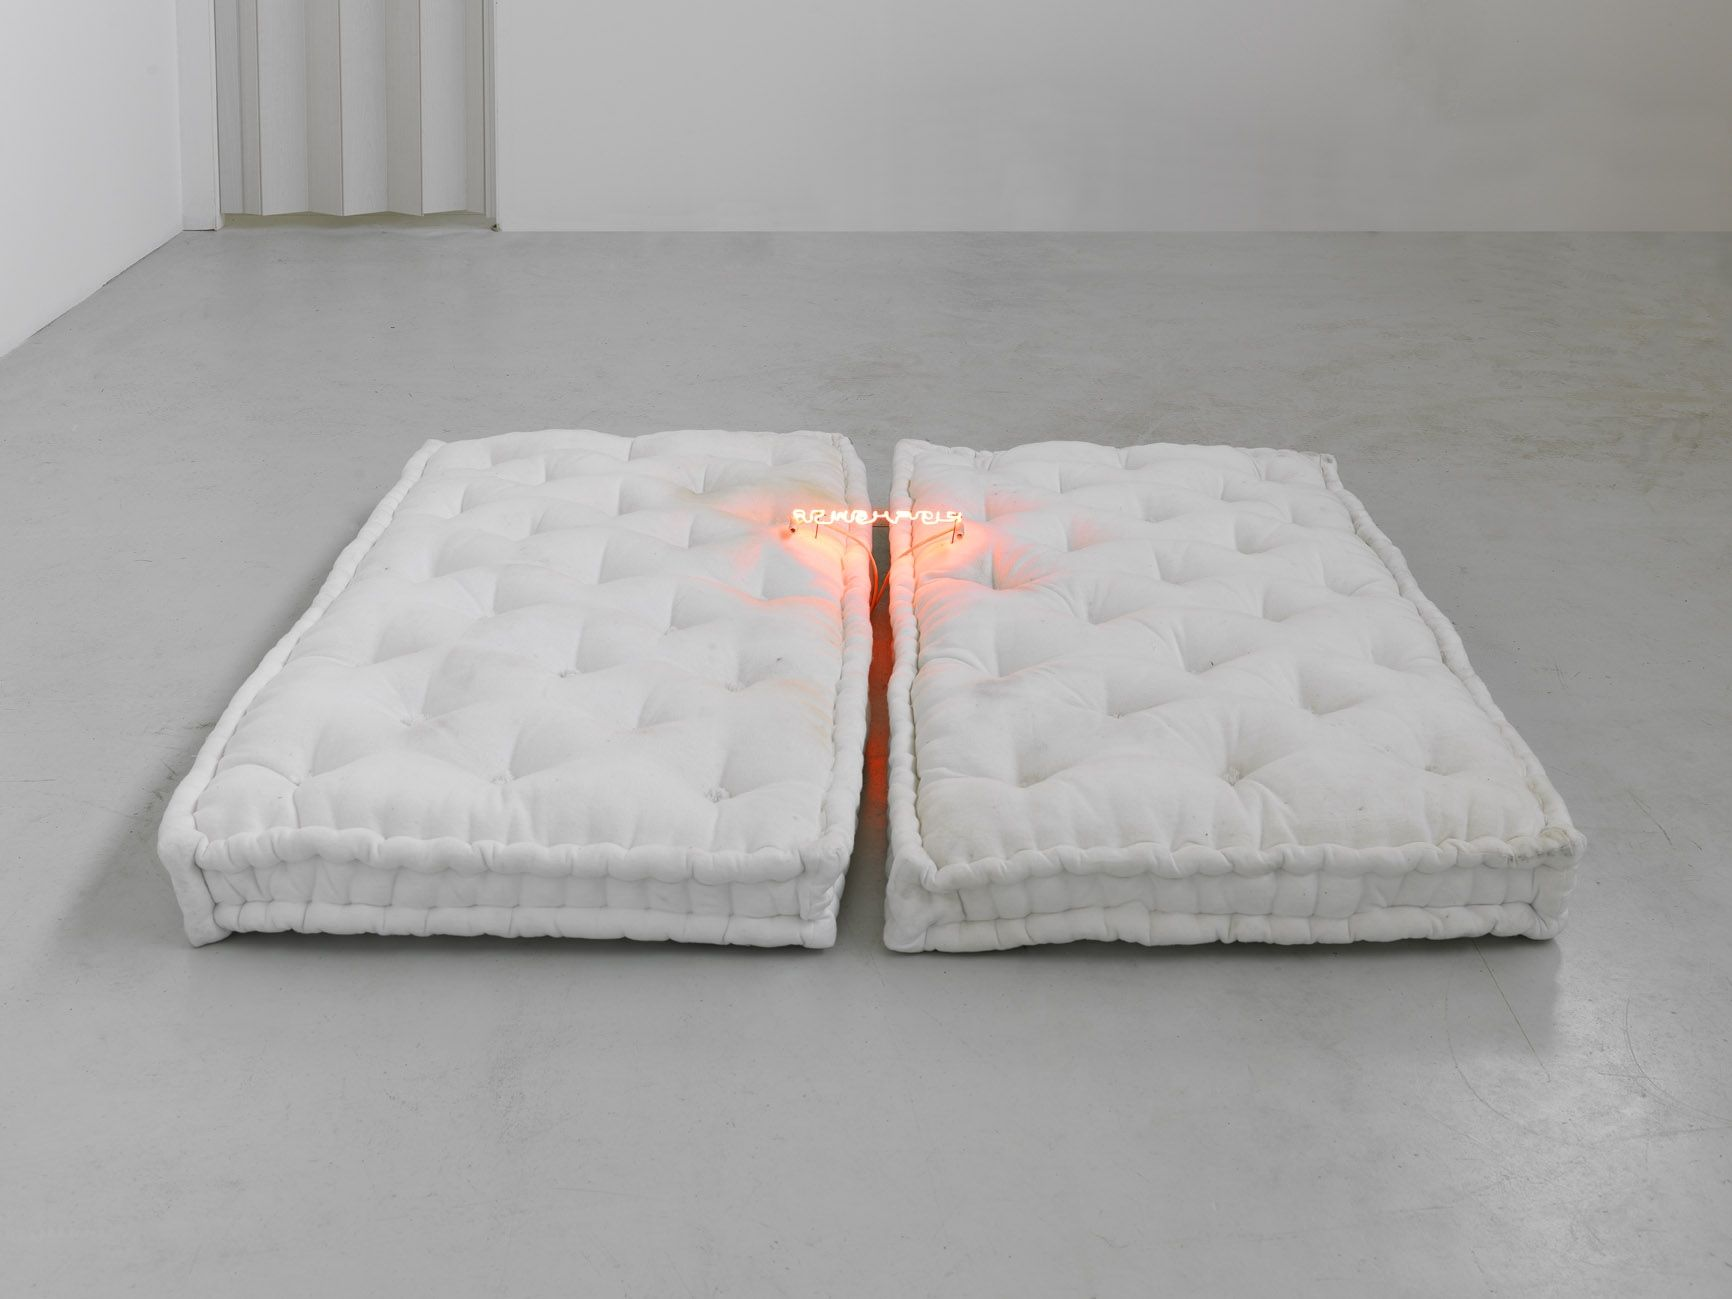 a contemporary sculpture with neon lights and a mattress by Pier Paolo Calzolari